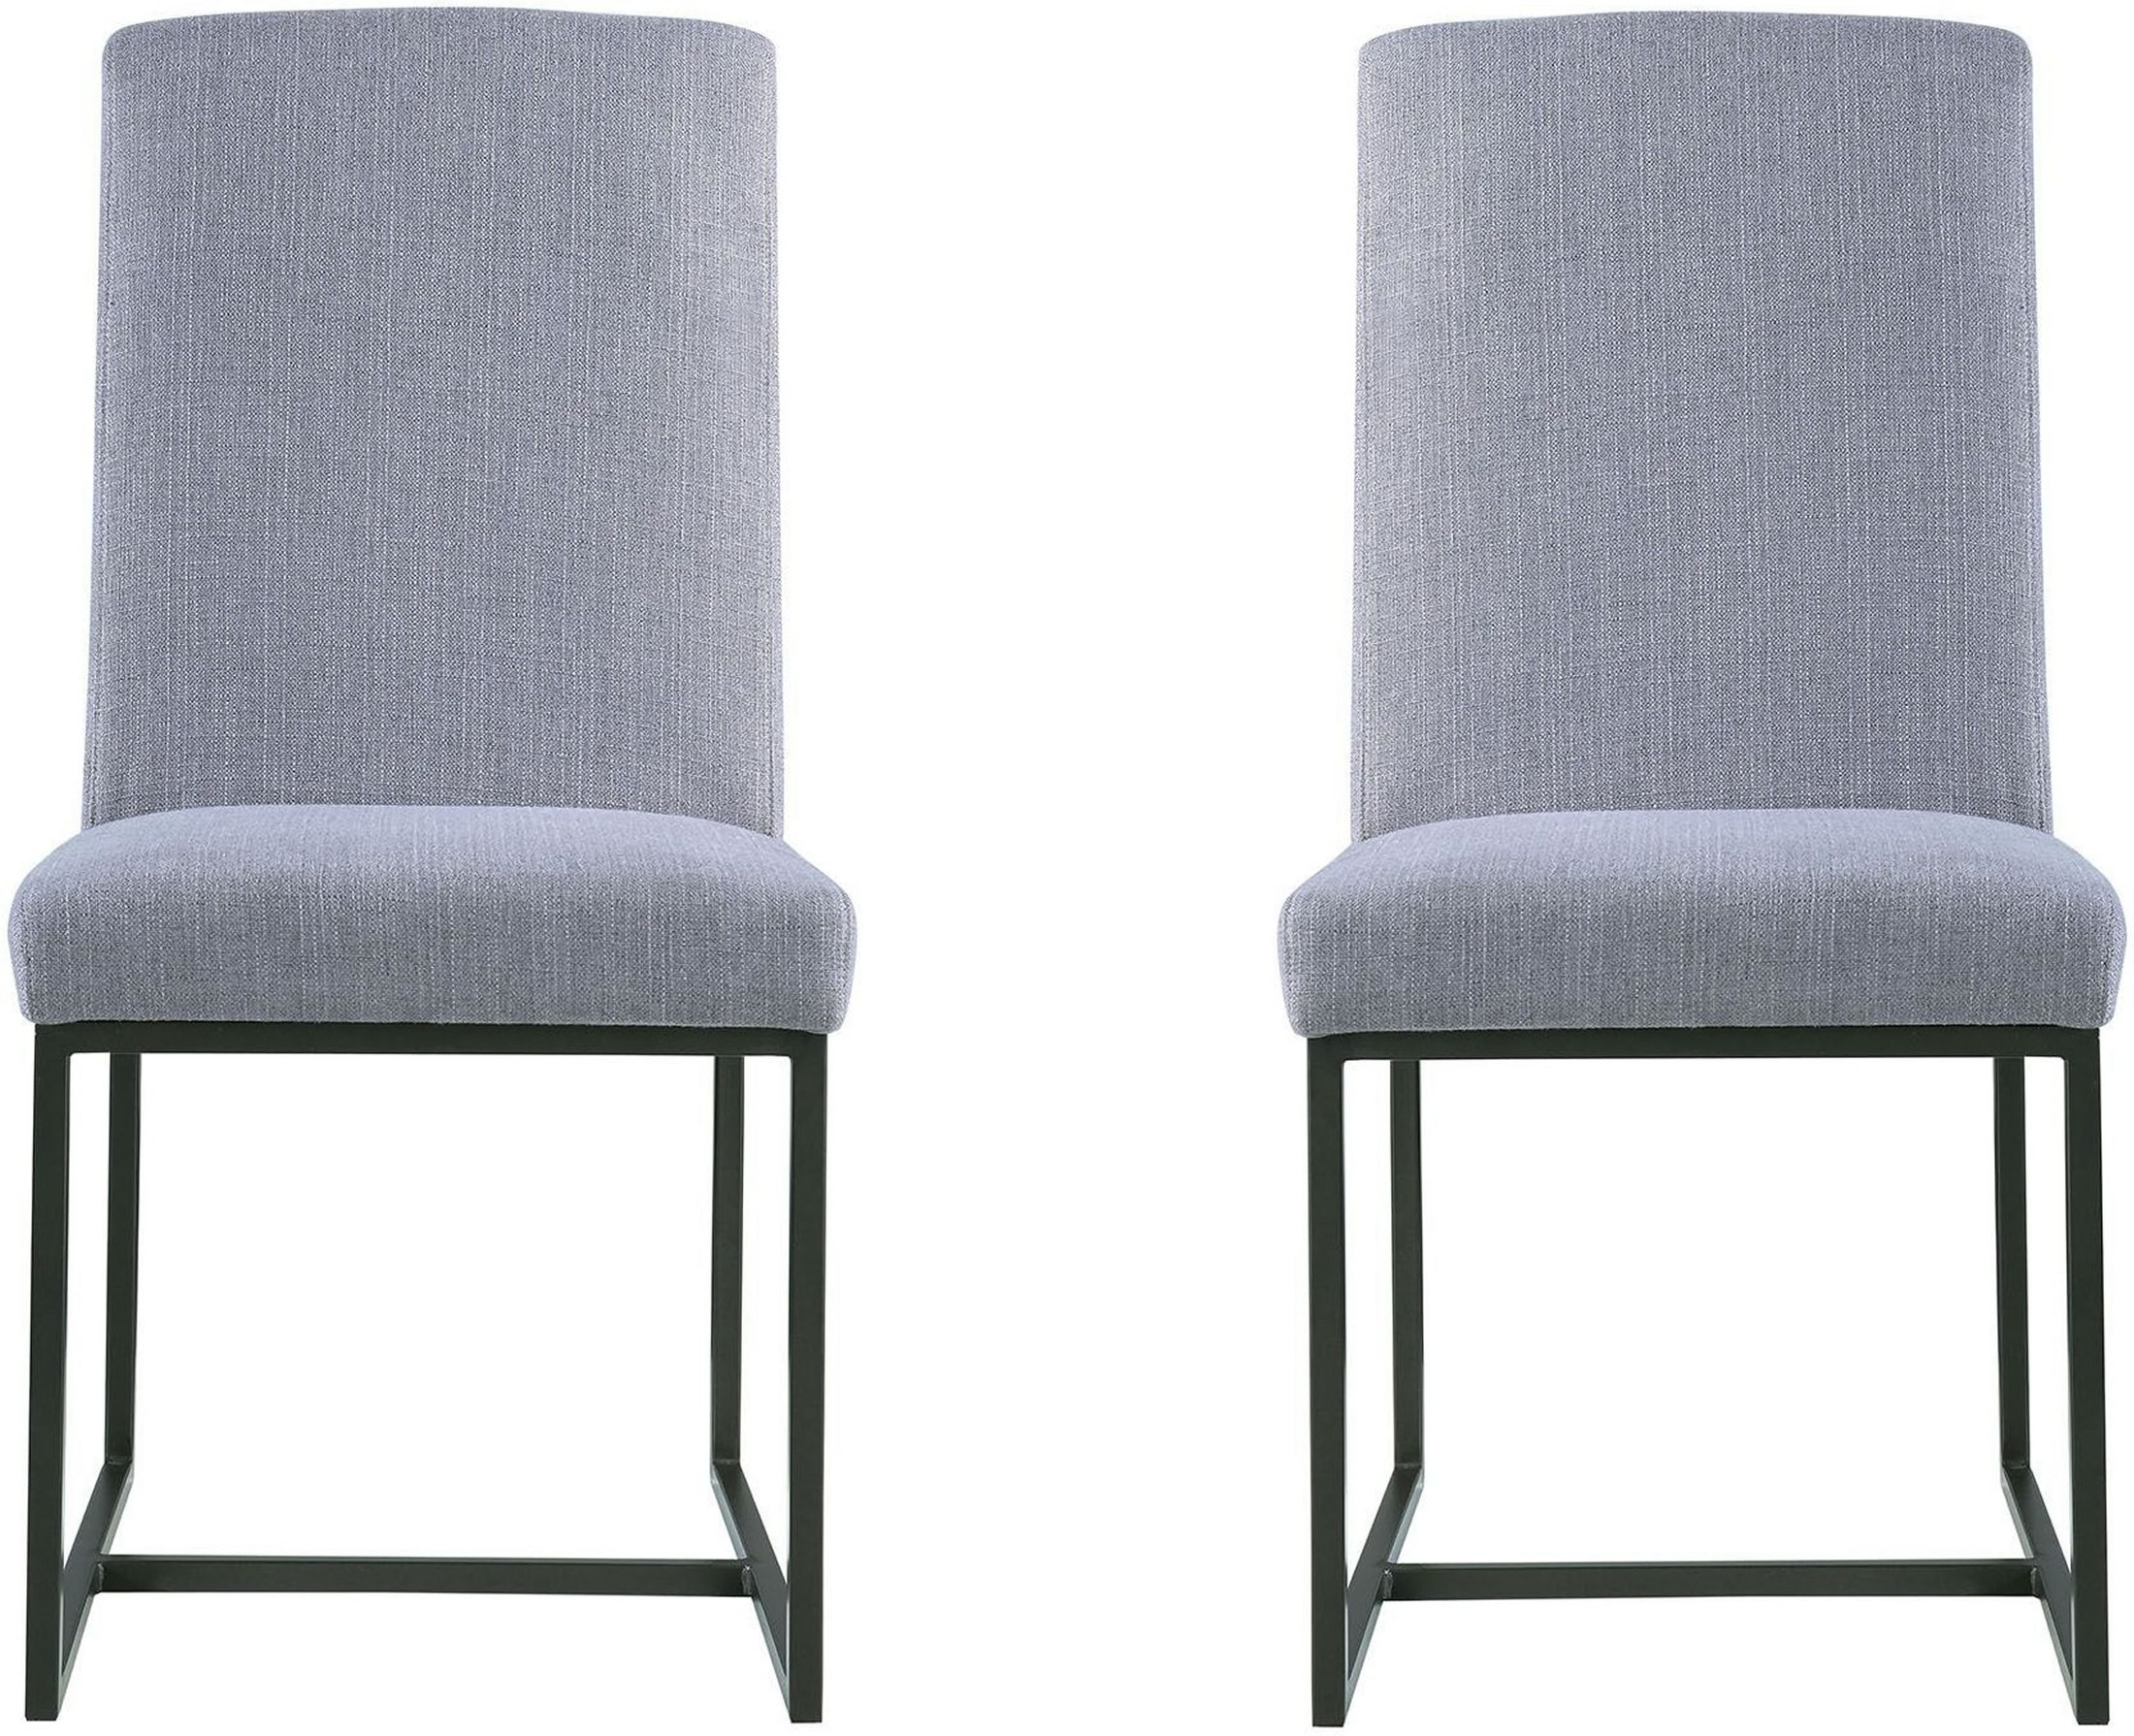 City Chic Dark Bronze Uphostered Dining Chair By Donny Osmond Set Of 2 From Coaster Coleman